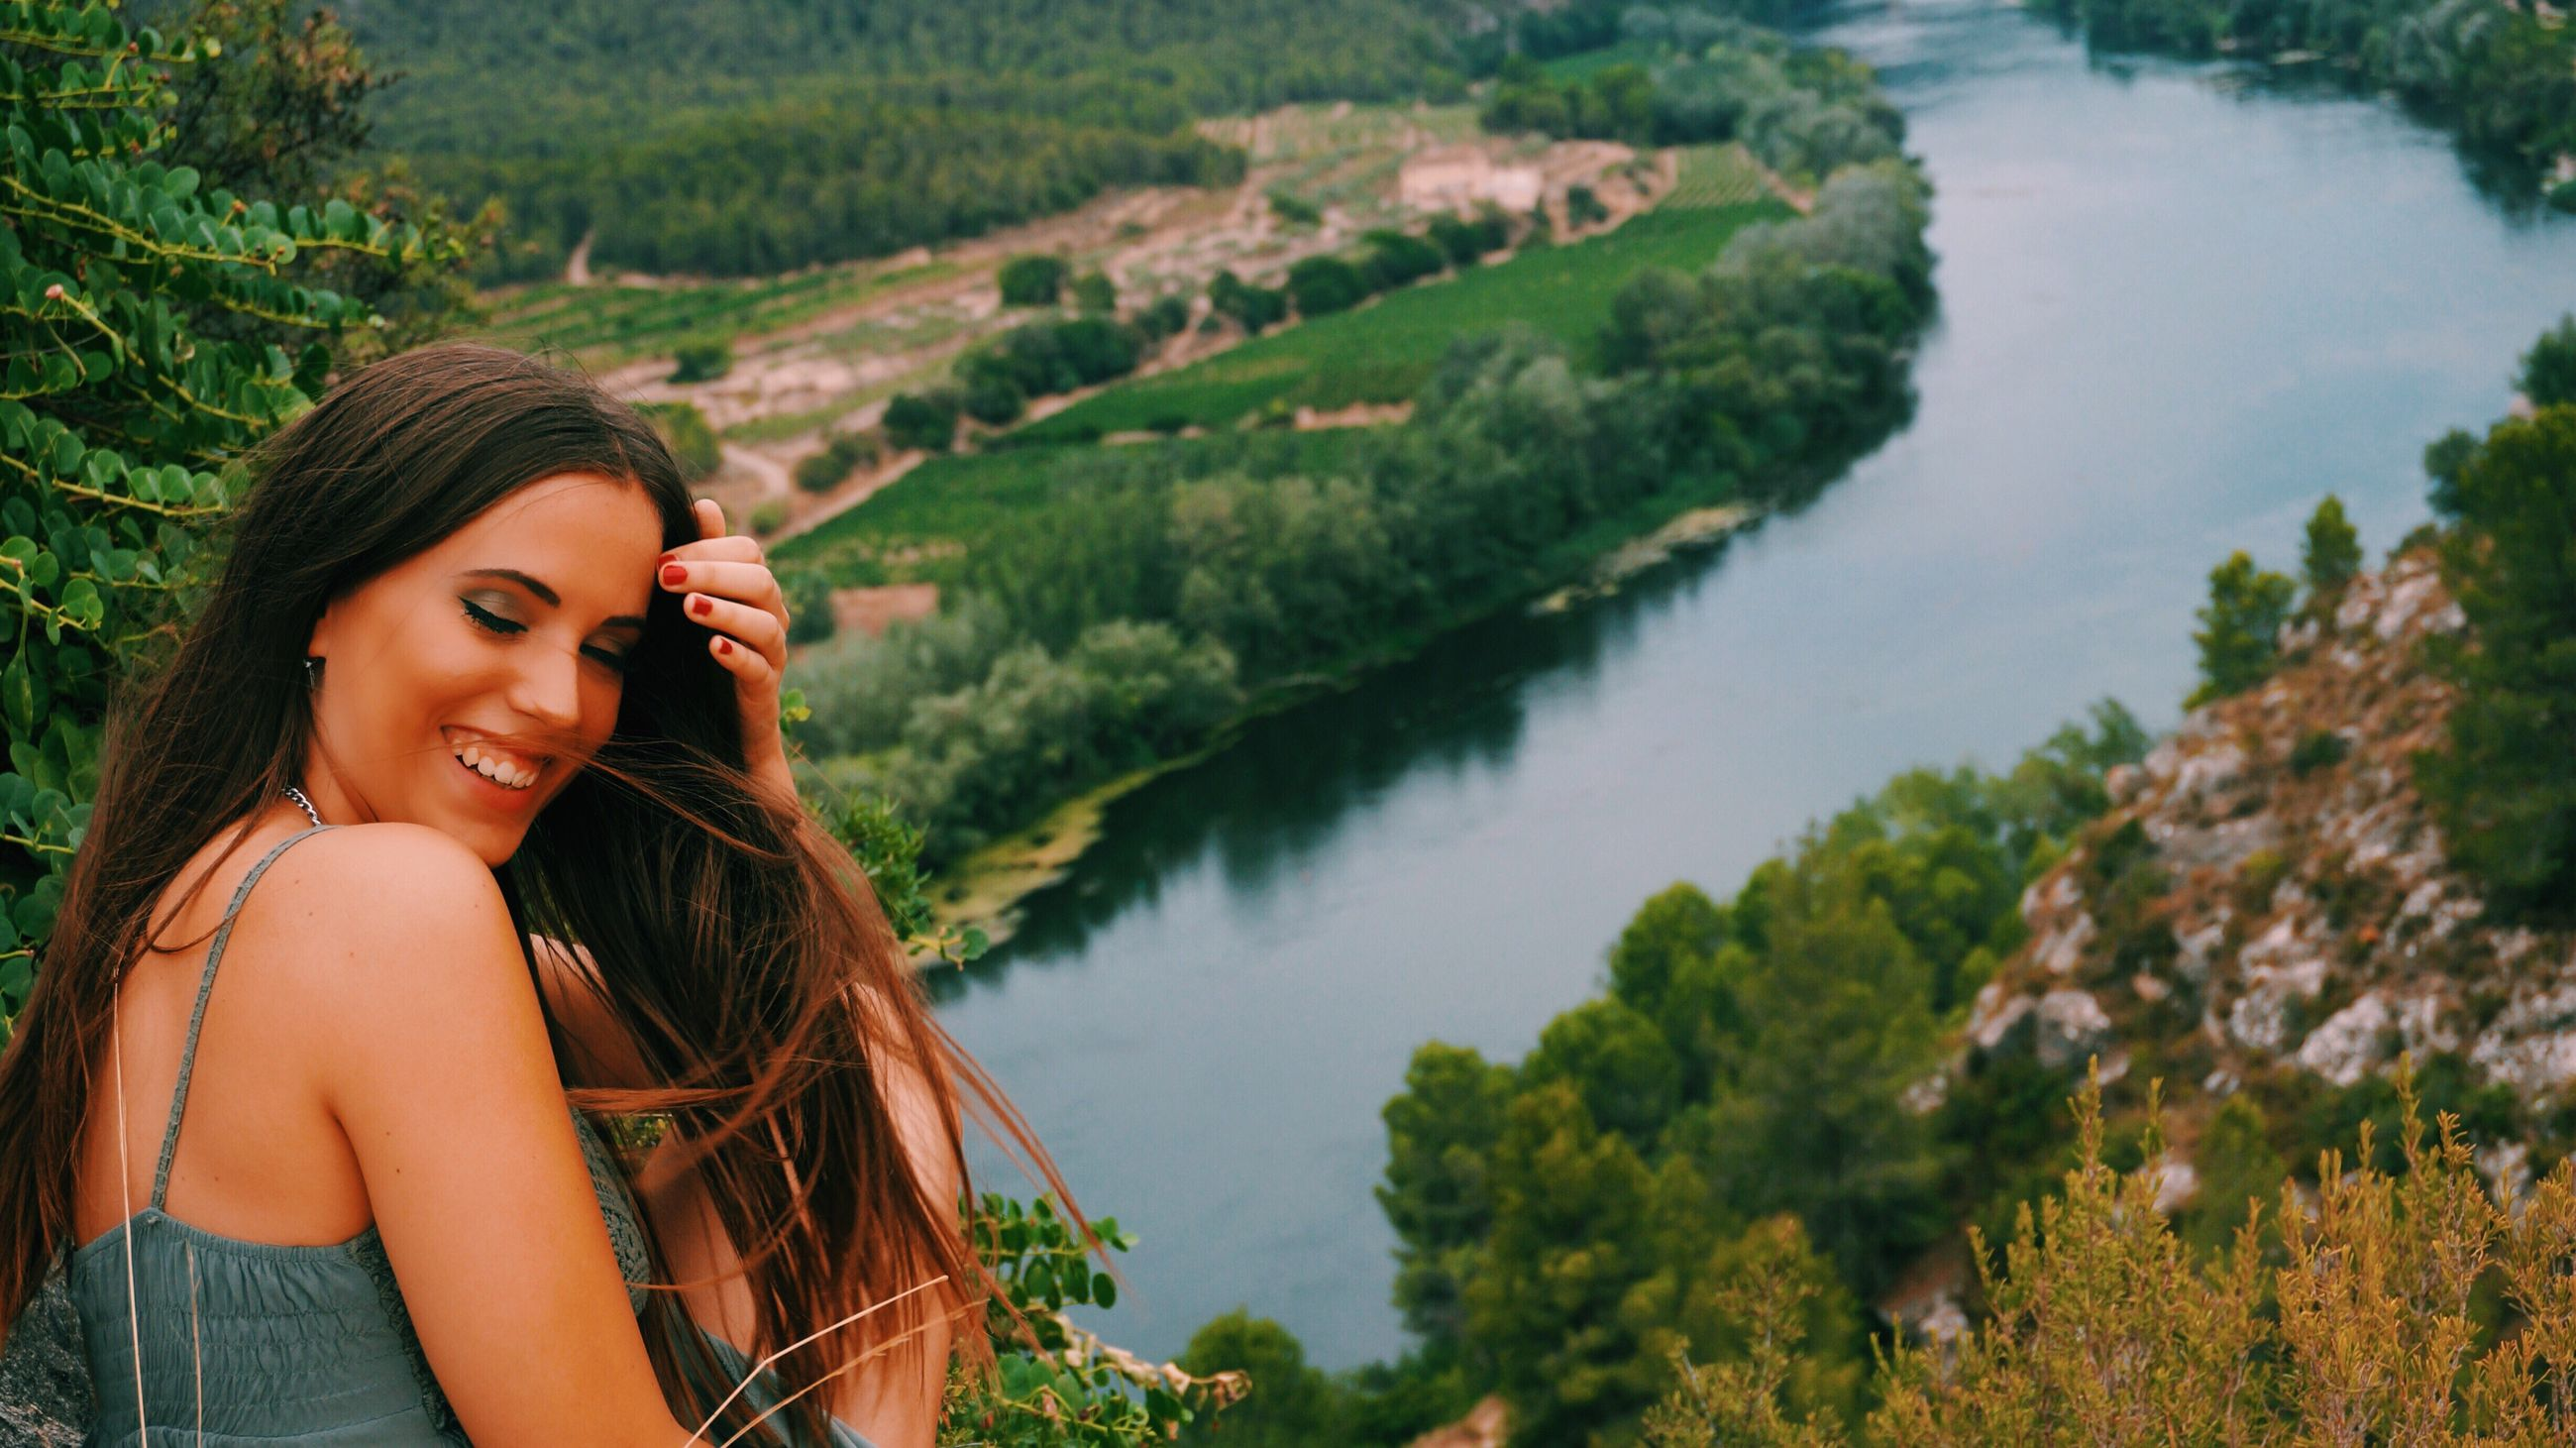 tree, lake, young adult, water, young women, long hair, leisure activity, lifestyles, casual clothing, scenics, tranquility, tourism, beauty, lakeshore, mountain, nature, beauty in nature, tranquil scene, looking at camera, black hair, vacations, person, green color